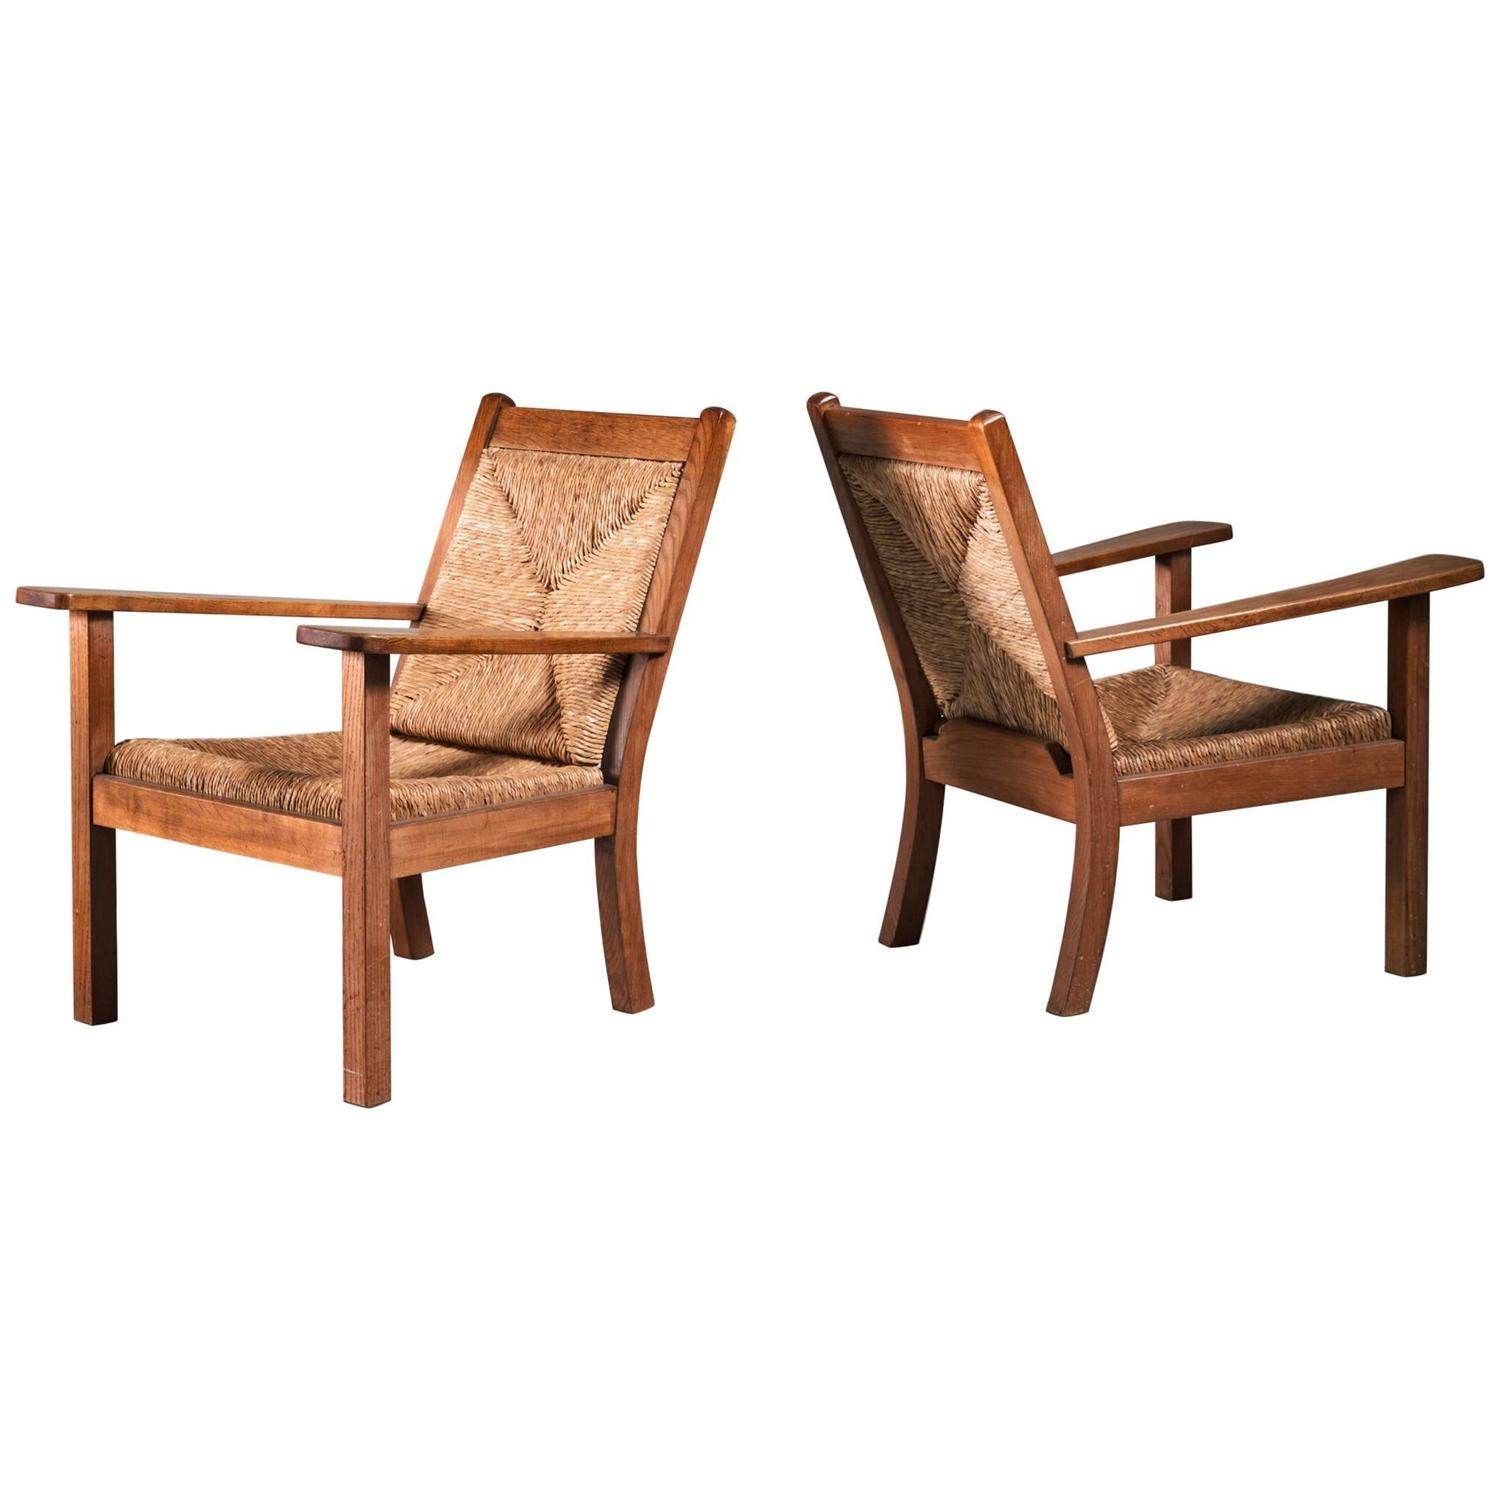 Pair of Willi Ohler Chairs in Oak and Original Rush Germany